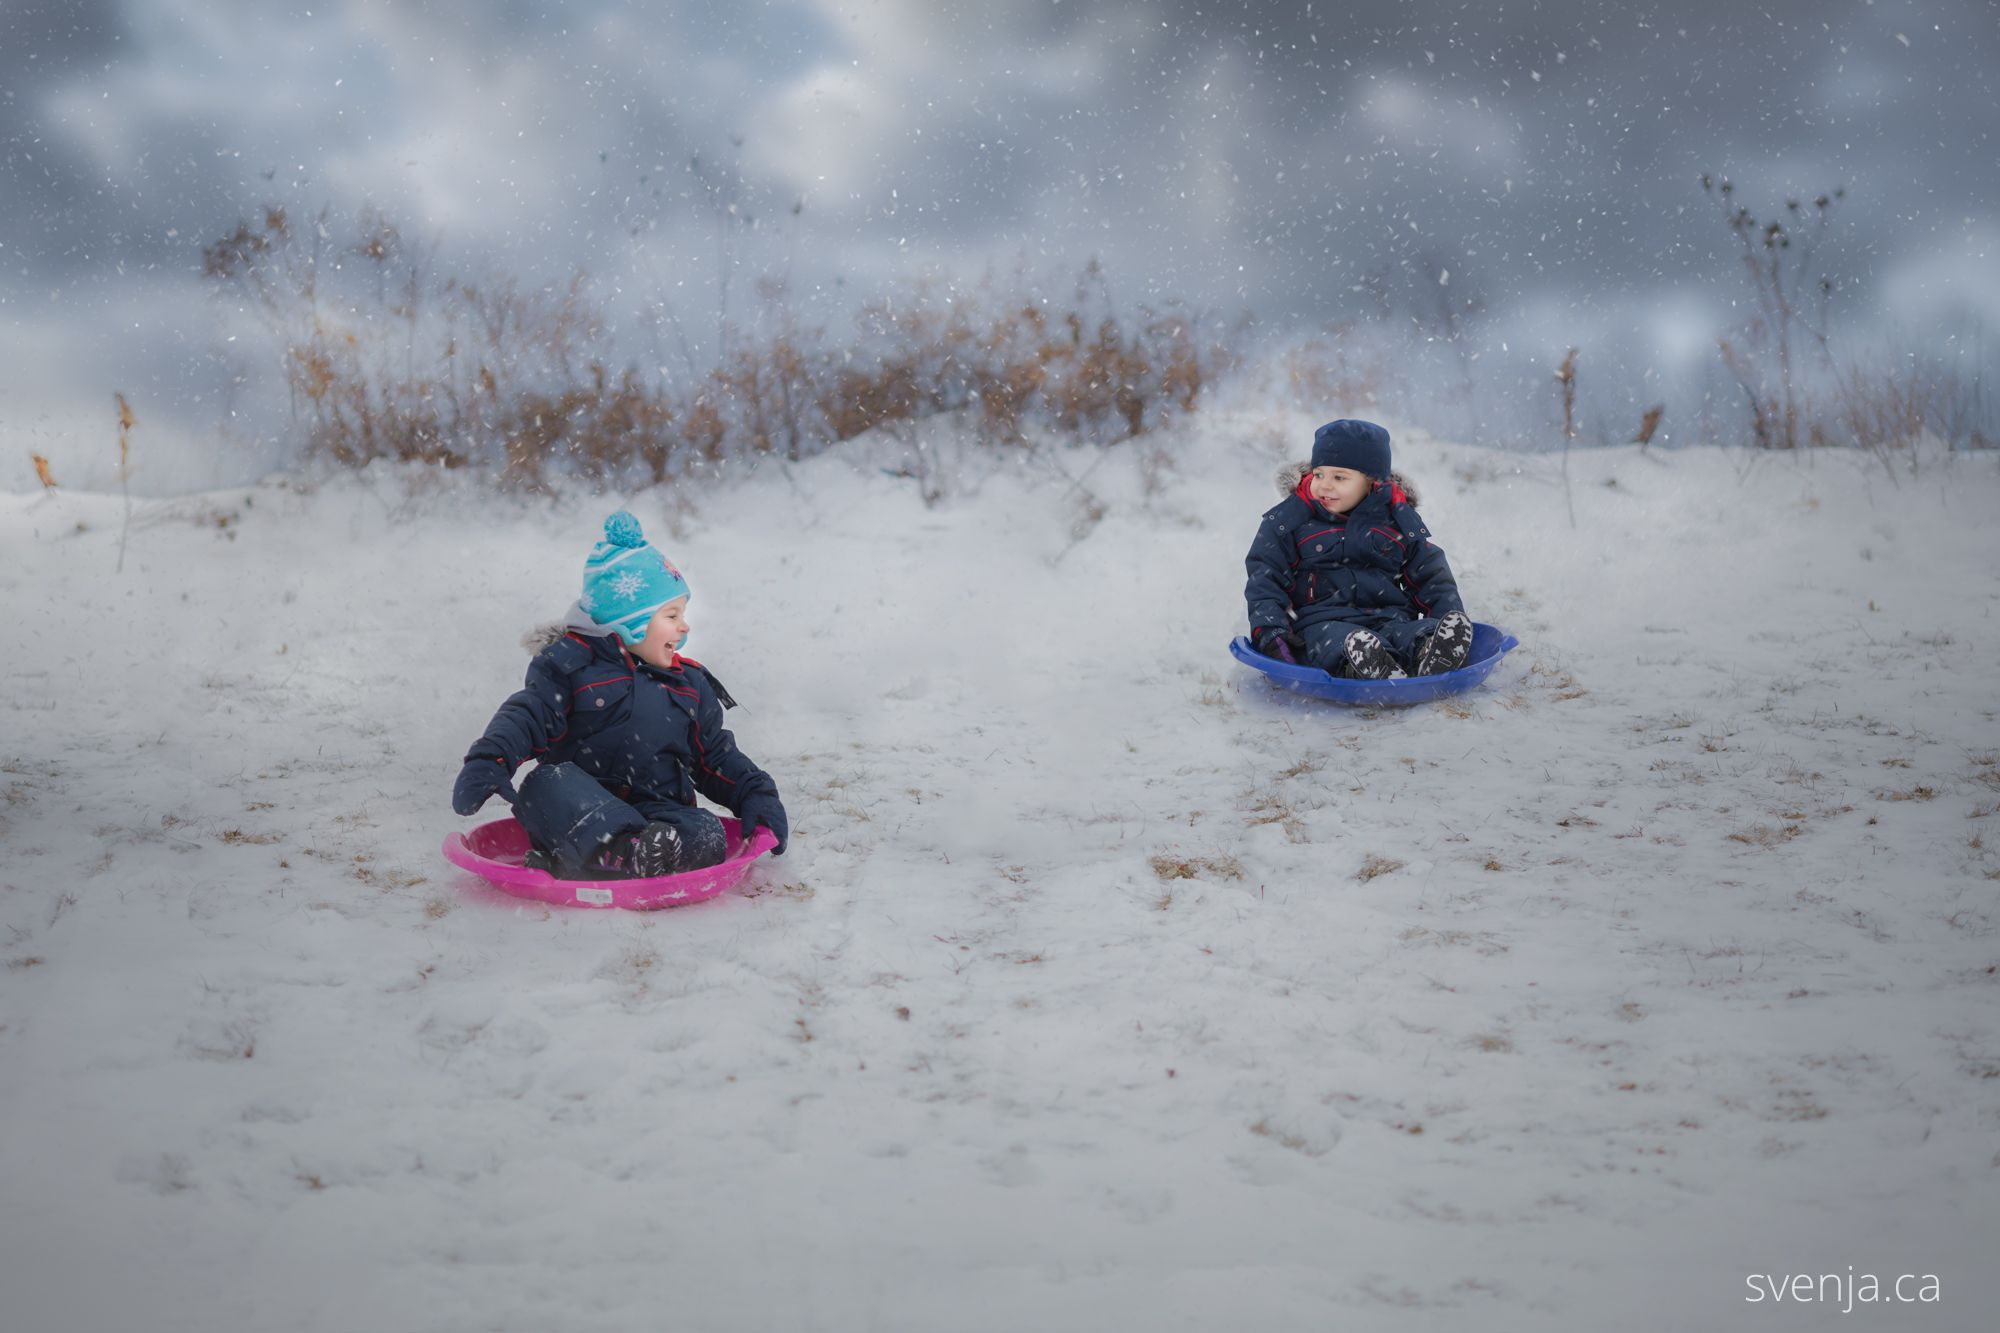 mother prepares her two children for sledding down a hill